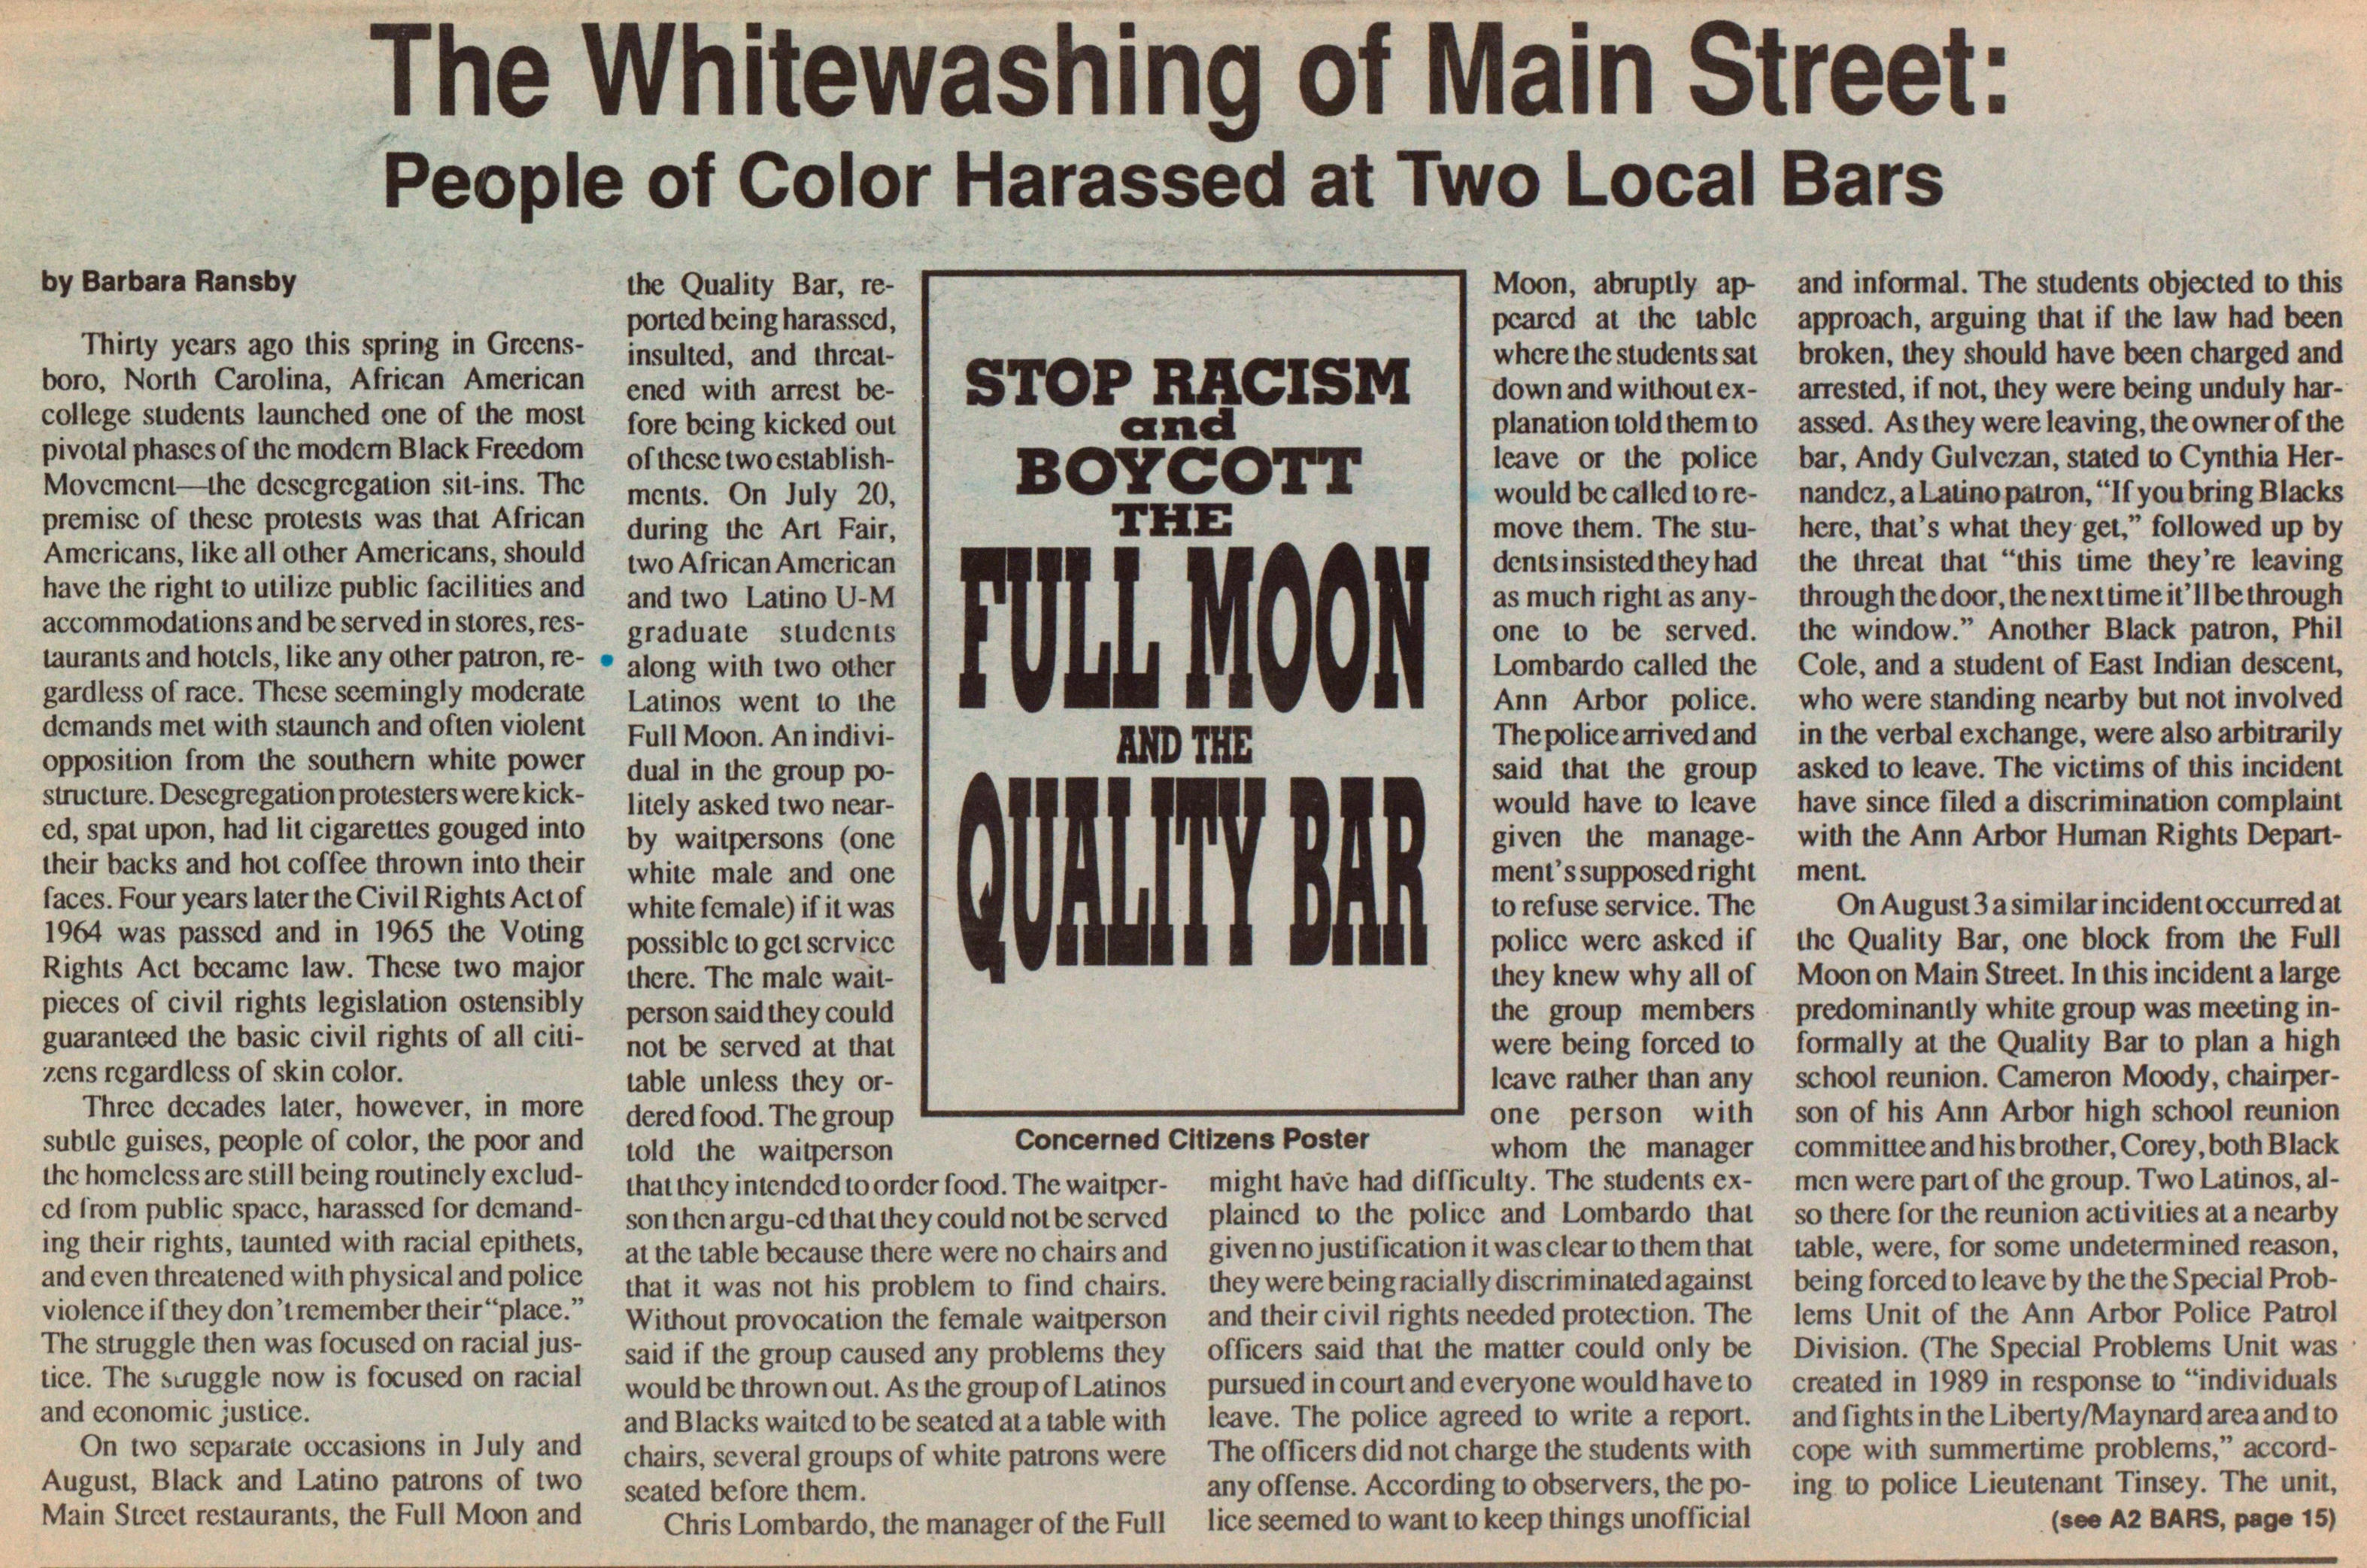 The Whitewashing Of Main Street: People Of Color Harassed At Two Local Bars image